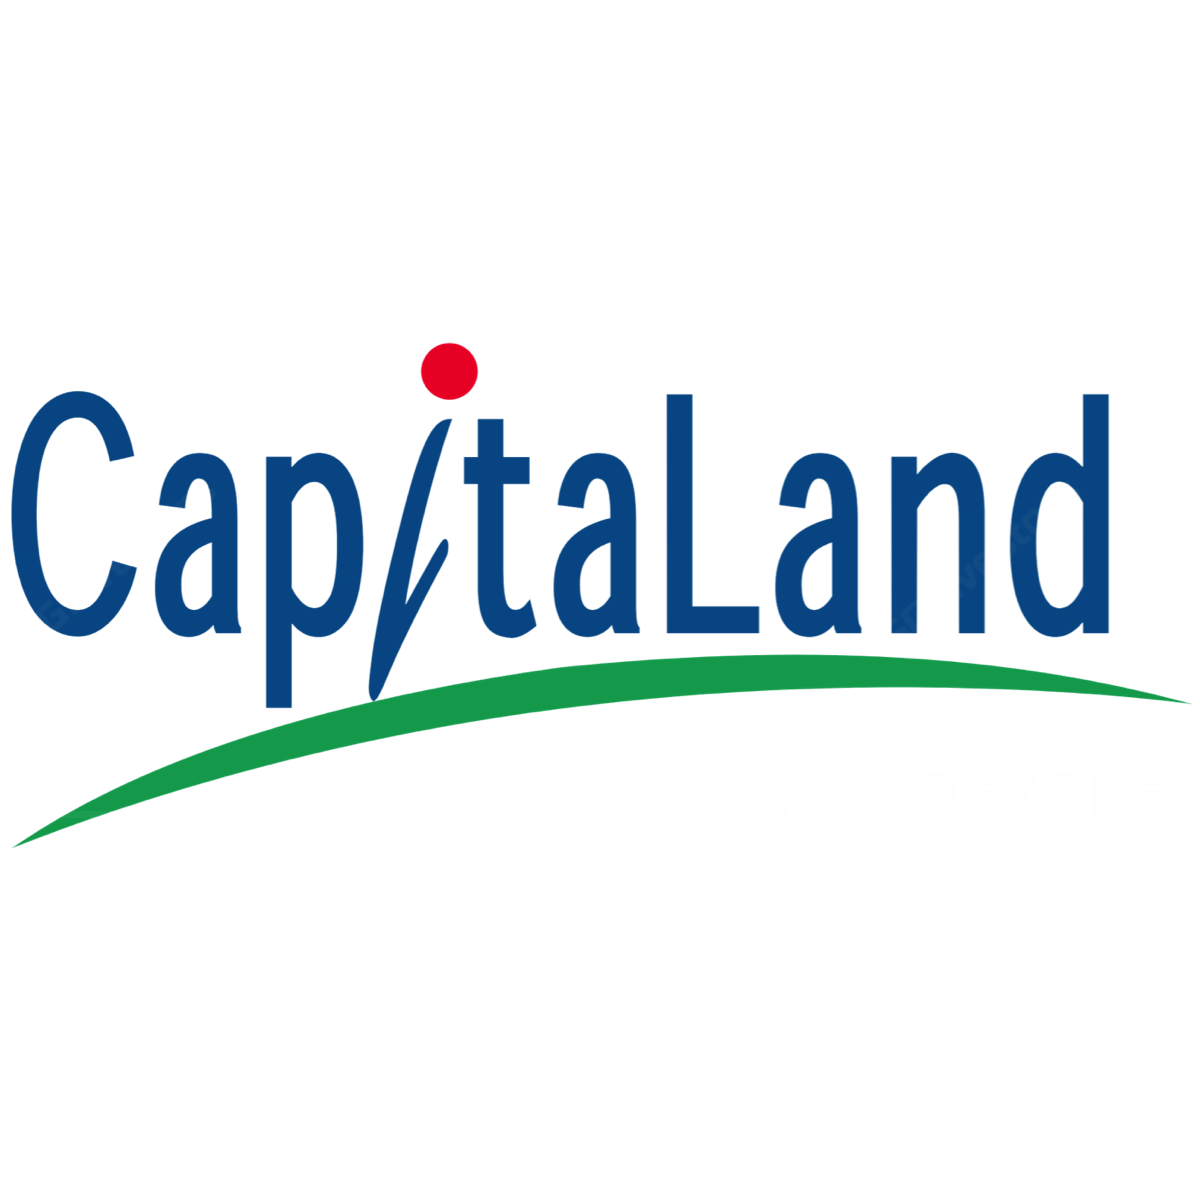 CapitaLand (CAPL SP) - DBS Vickers 2017-11-08: Boosted By Gains From Asset Reconstitution